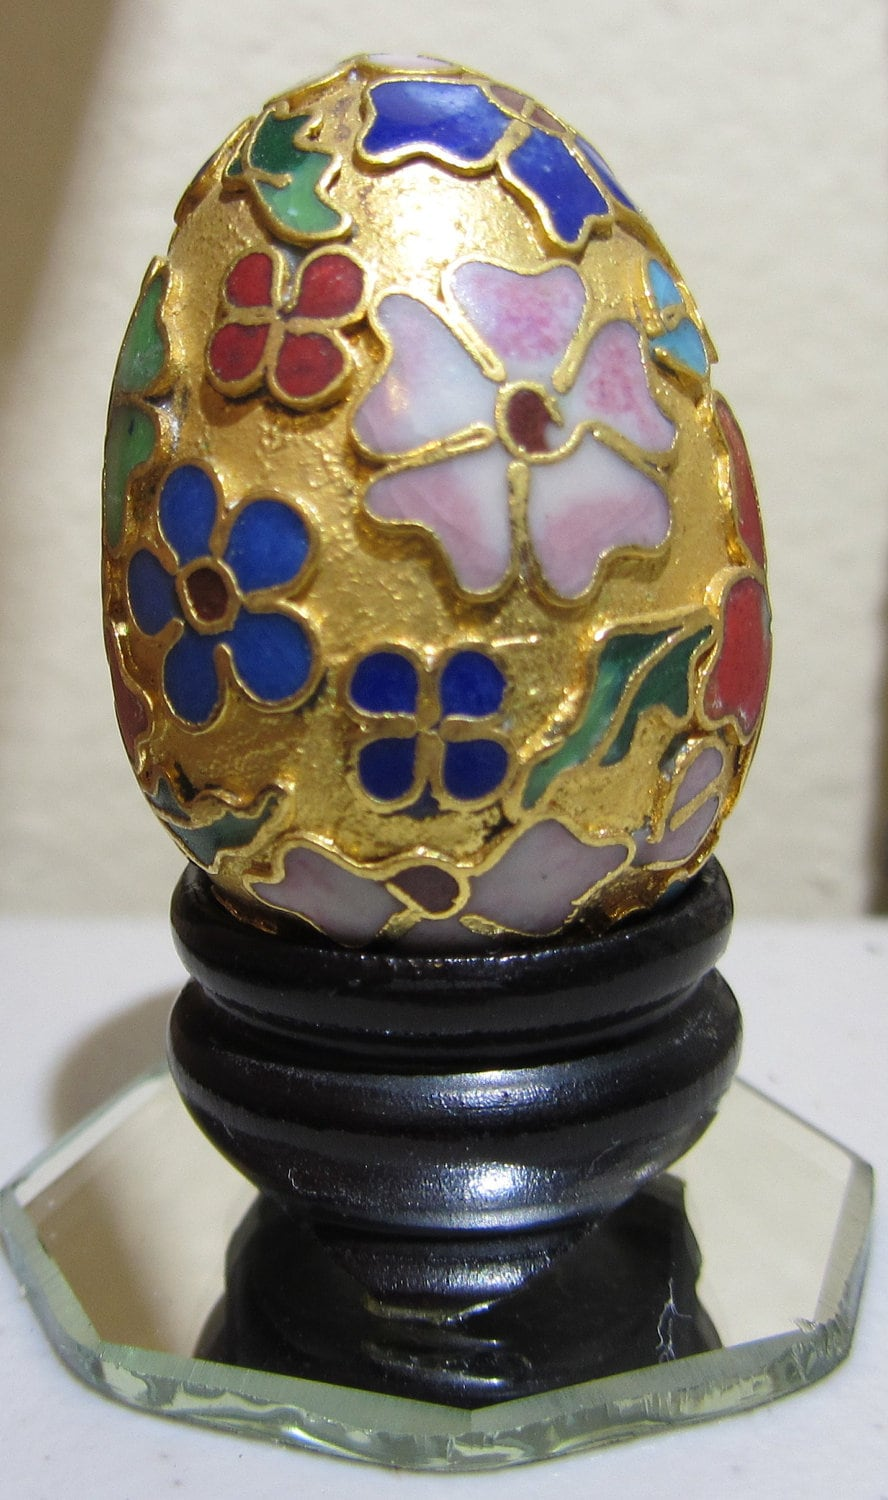 Cloison Stand Of Vintage Cloisonne Egg On Wooden Stand